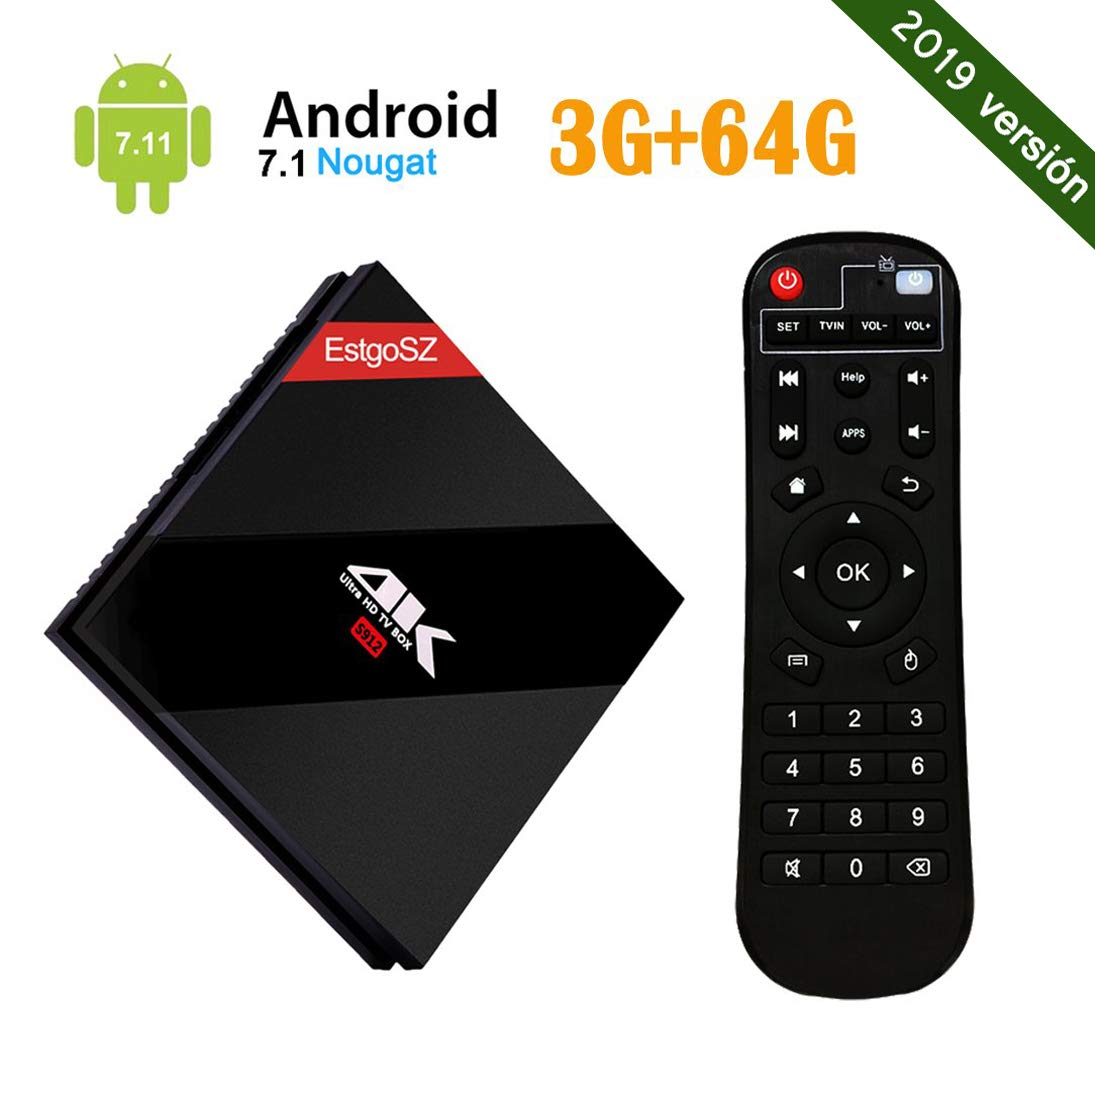 Android 7.1 EstgoSZ 4K TV BOX con Amlogic S912 Octa Core RAM 3GB ROM 64GB Smart TV Box con Control Remoto con Dual WiFi 2.4 GHz/5.0 GHz 1000M LAN Bluetooth 4.1 H.265: